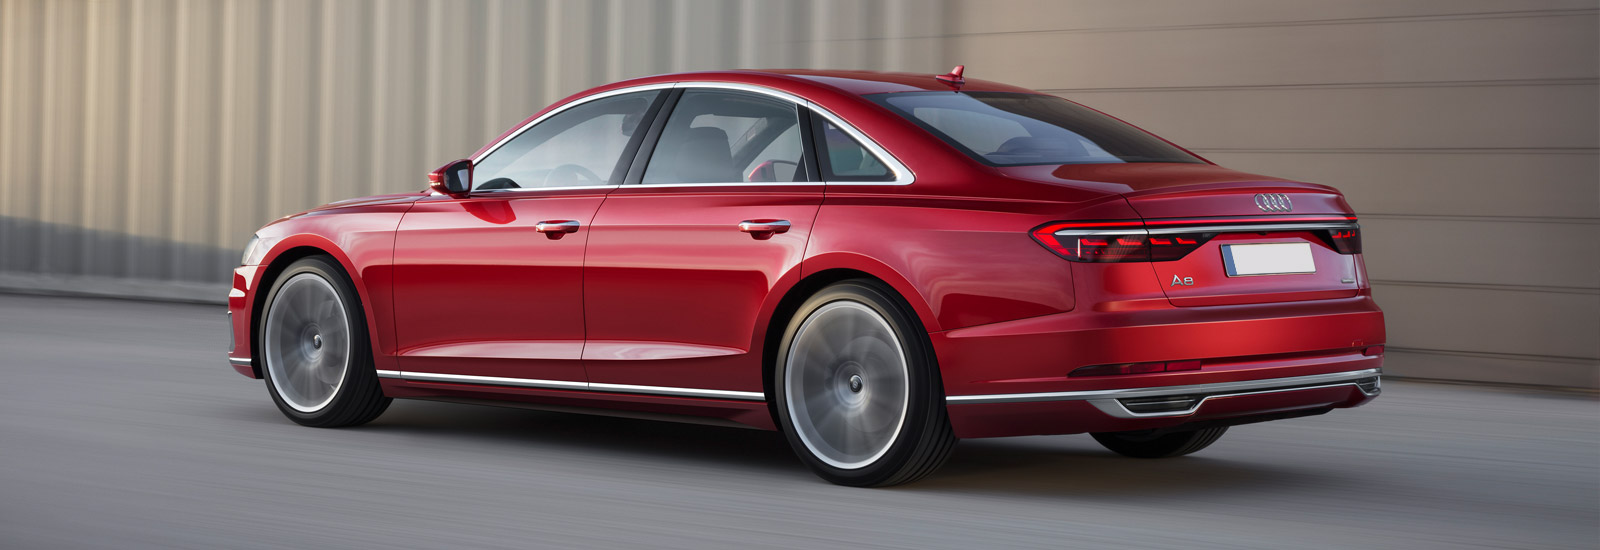 2018 audi 8 price.  audi audi a8 driving and engines and 2018 audi 8 price